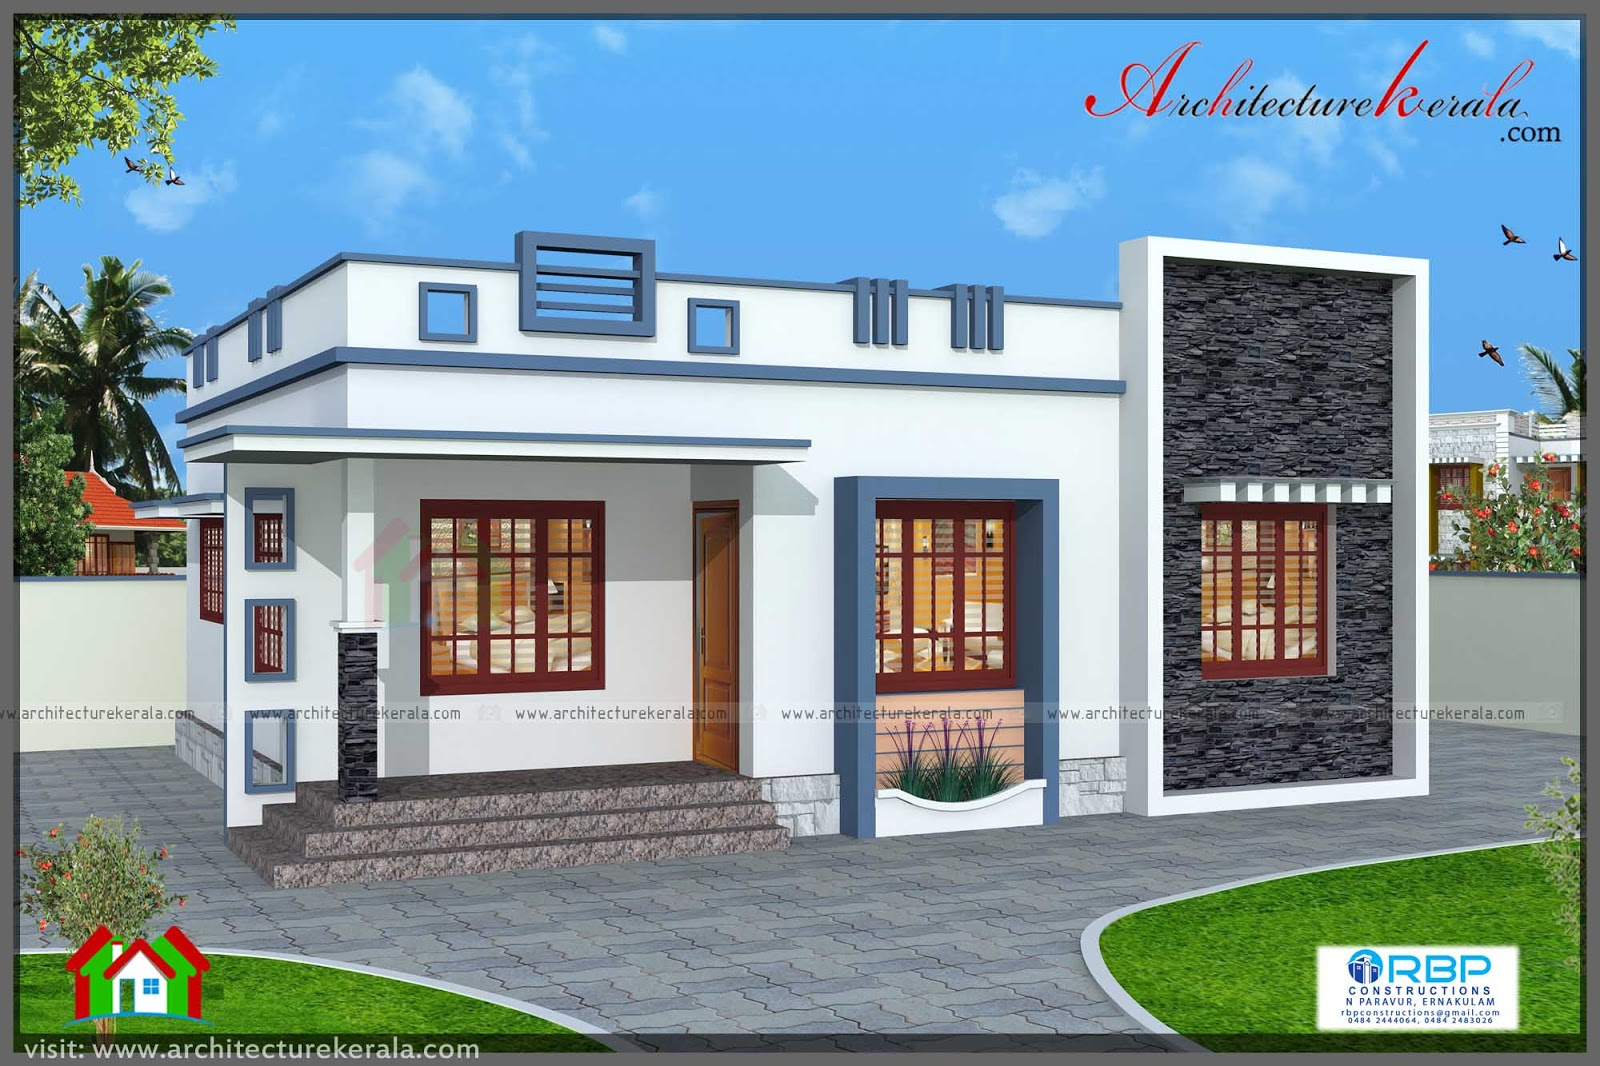 760 square feet 3 bedroom house plan architecture kerala for Kerala home style 3 bedroom